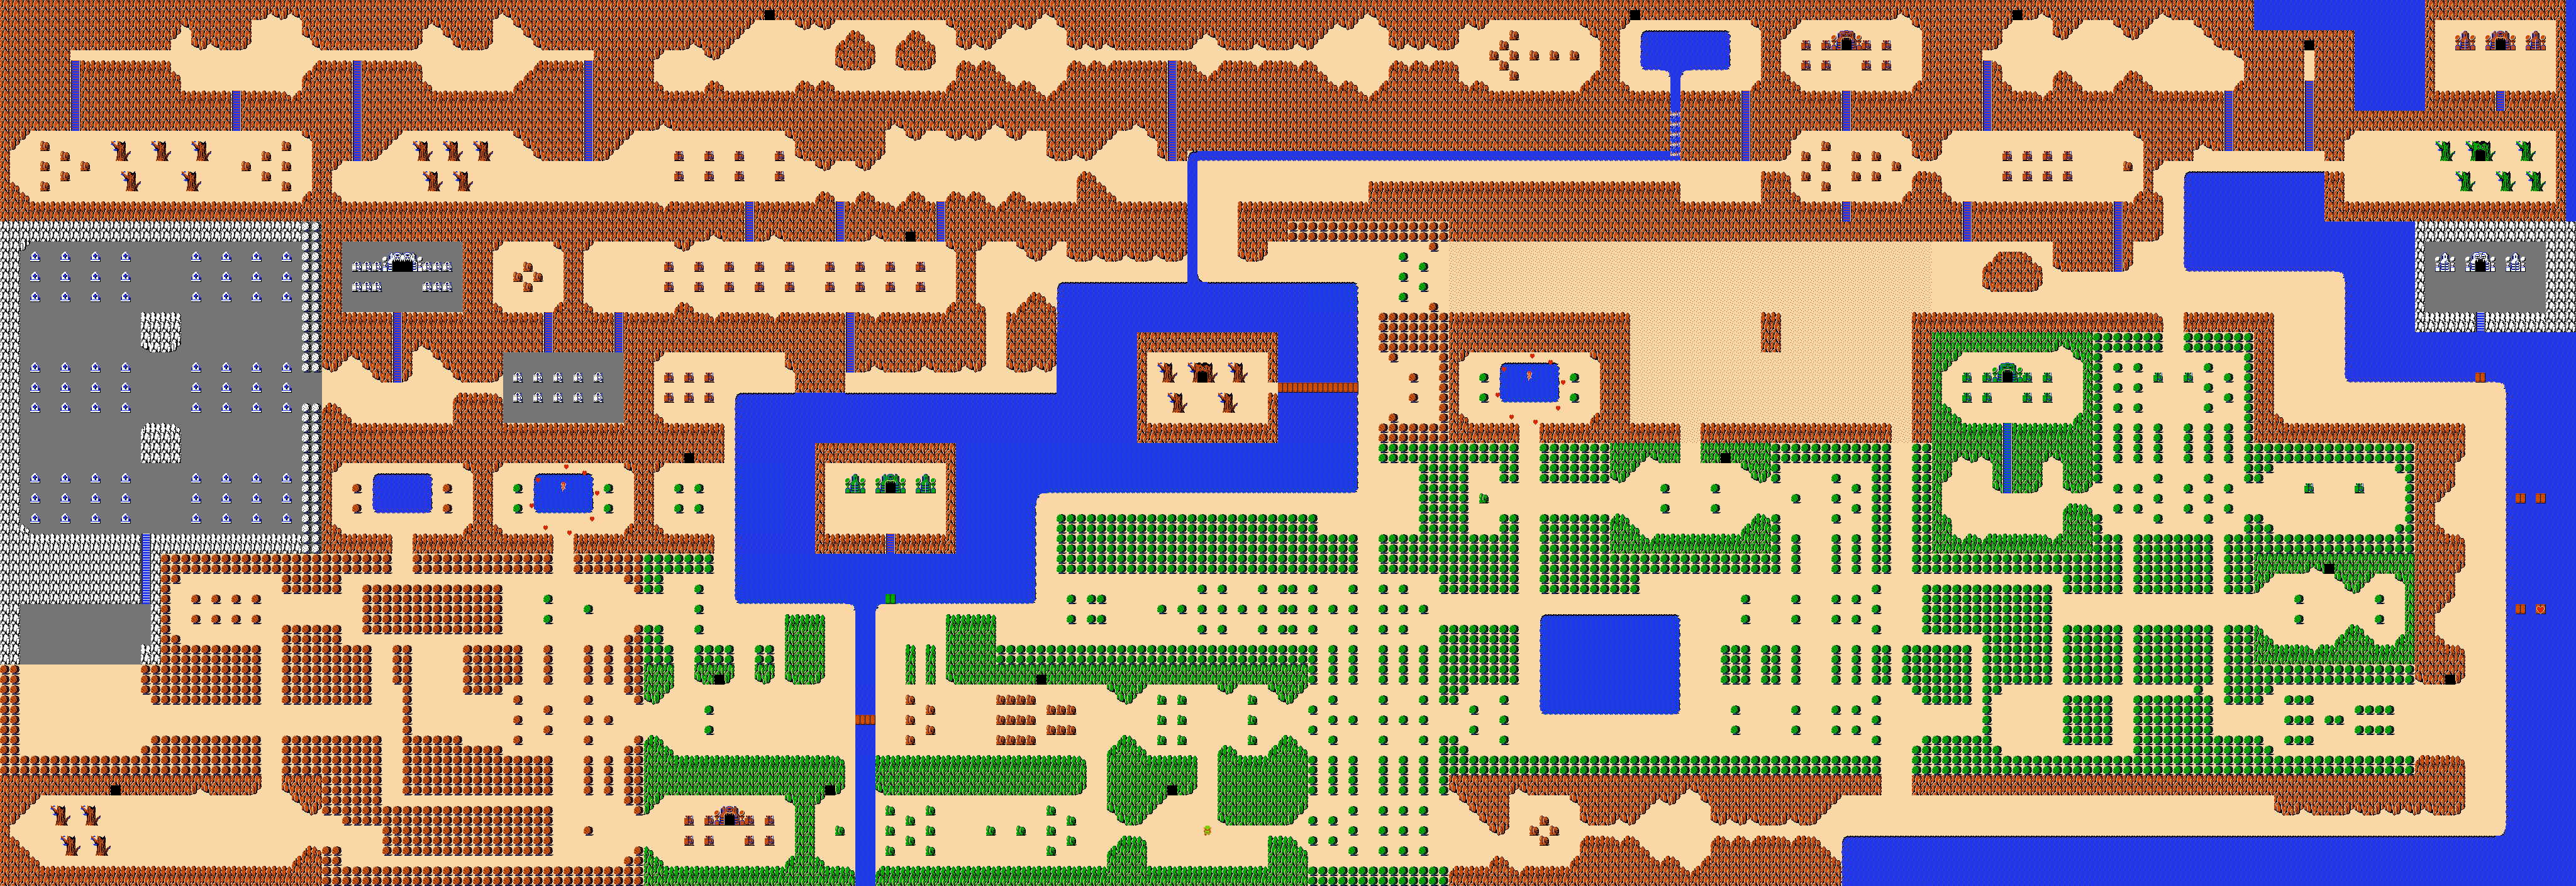 Printable Zelda Map Fresh Nintendo S Design Documents From The Legend Of Zelda